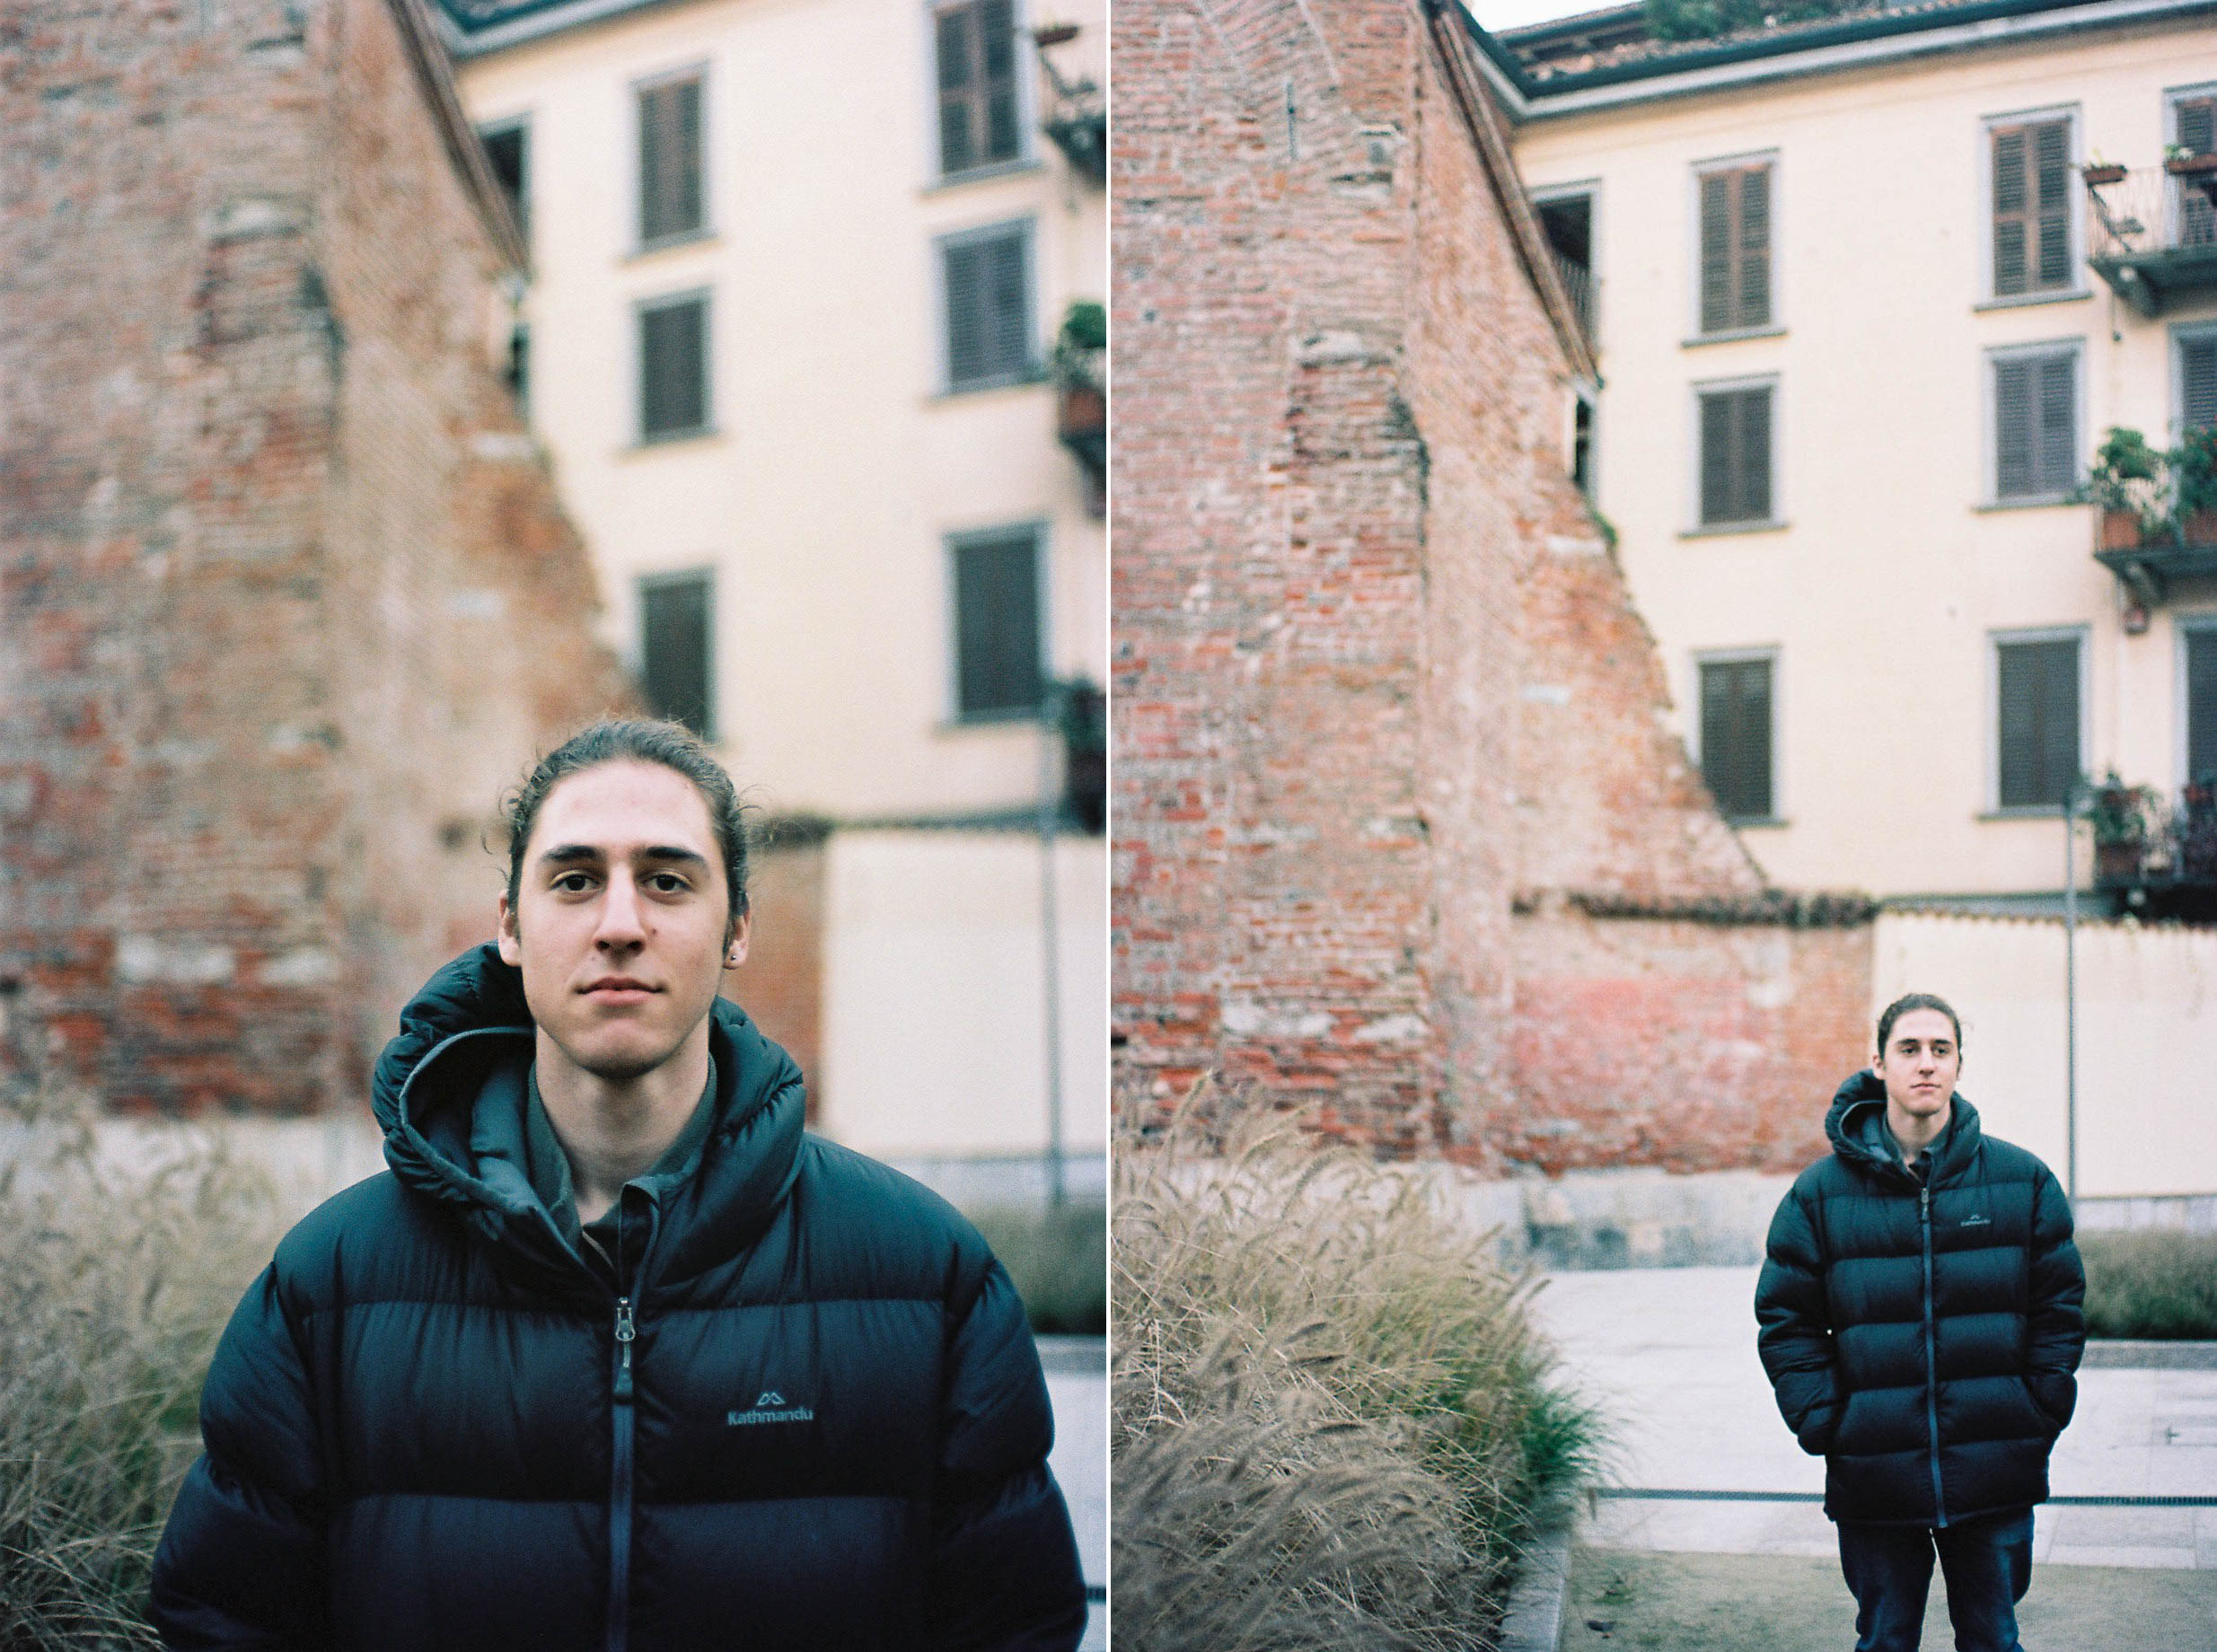 Igor Portrait Italian Winter Travels Lifestyle Travel Photographer